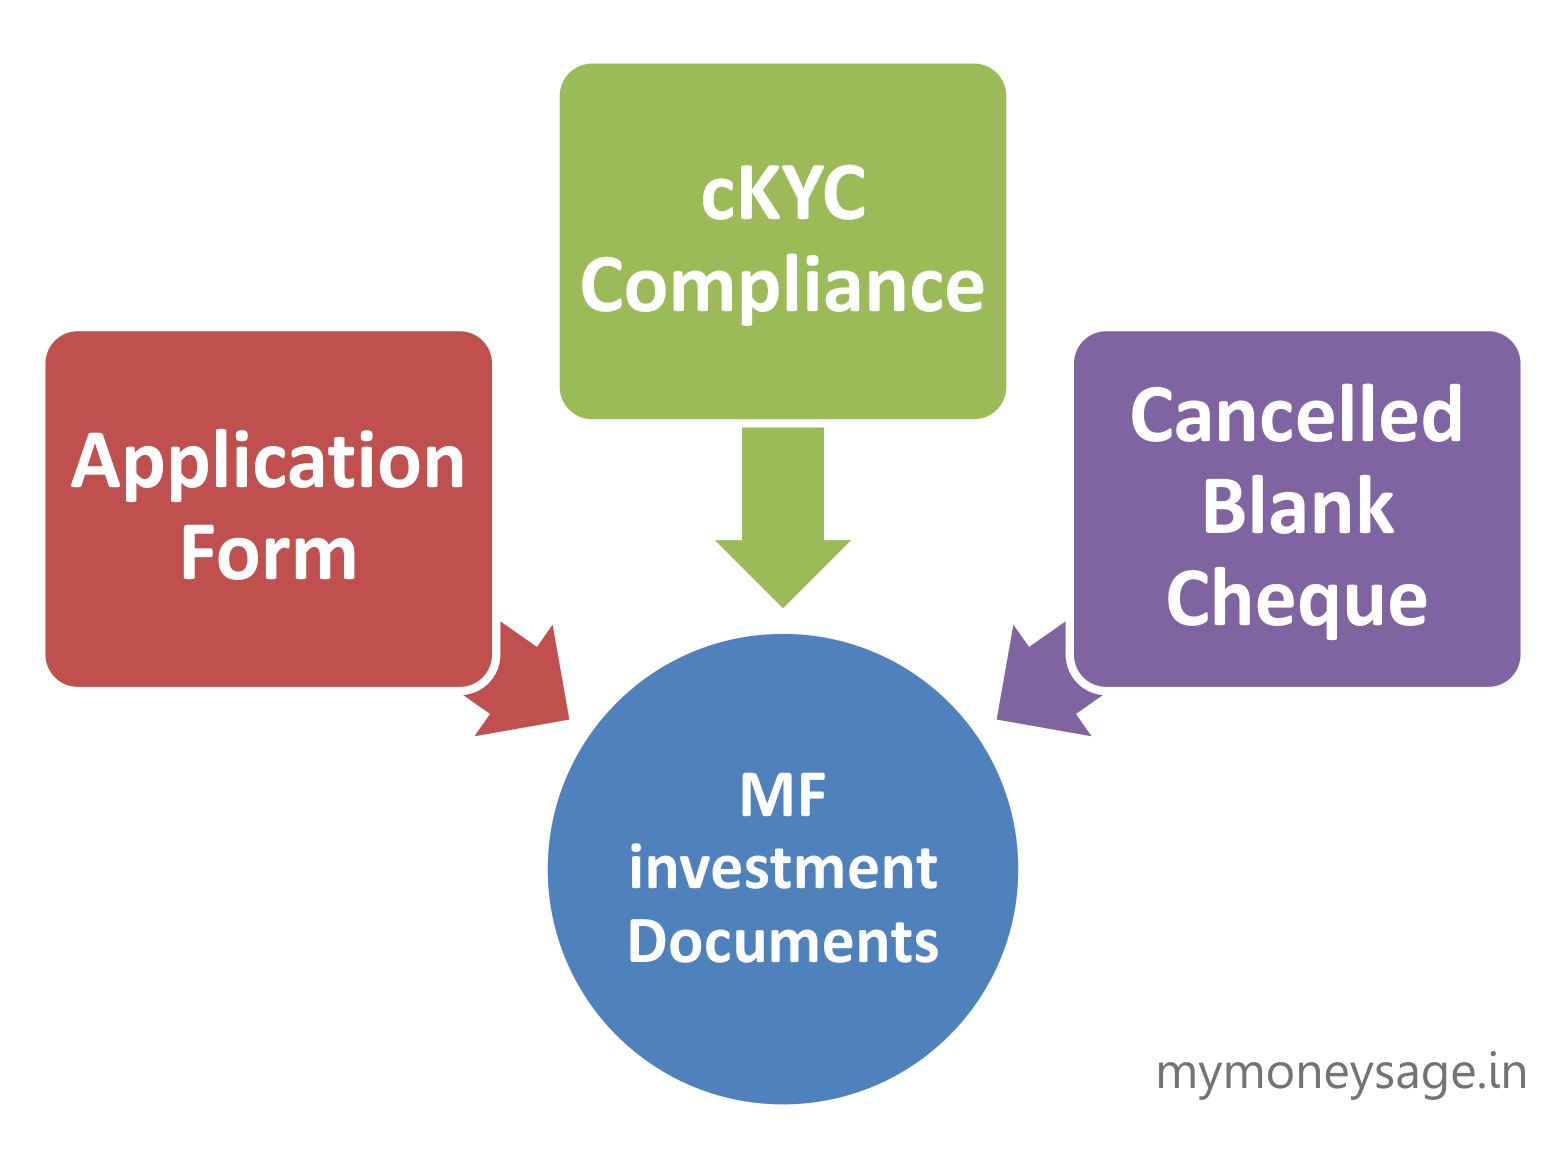 Mutual Fund investments: Here's the document checklist